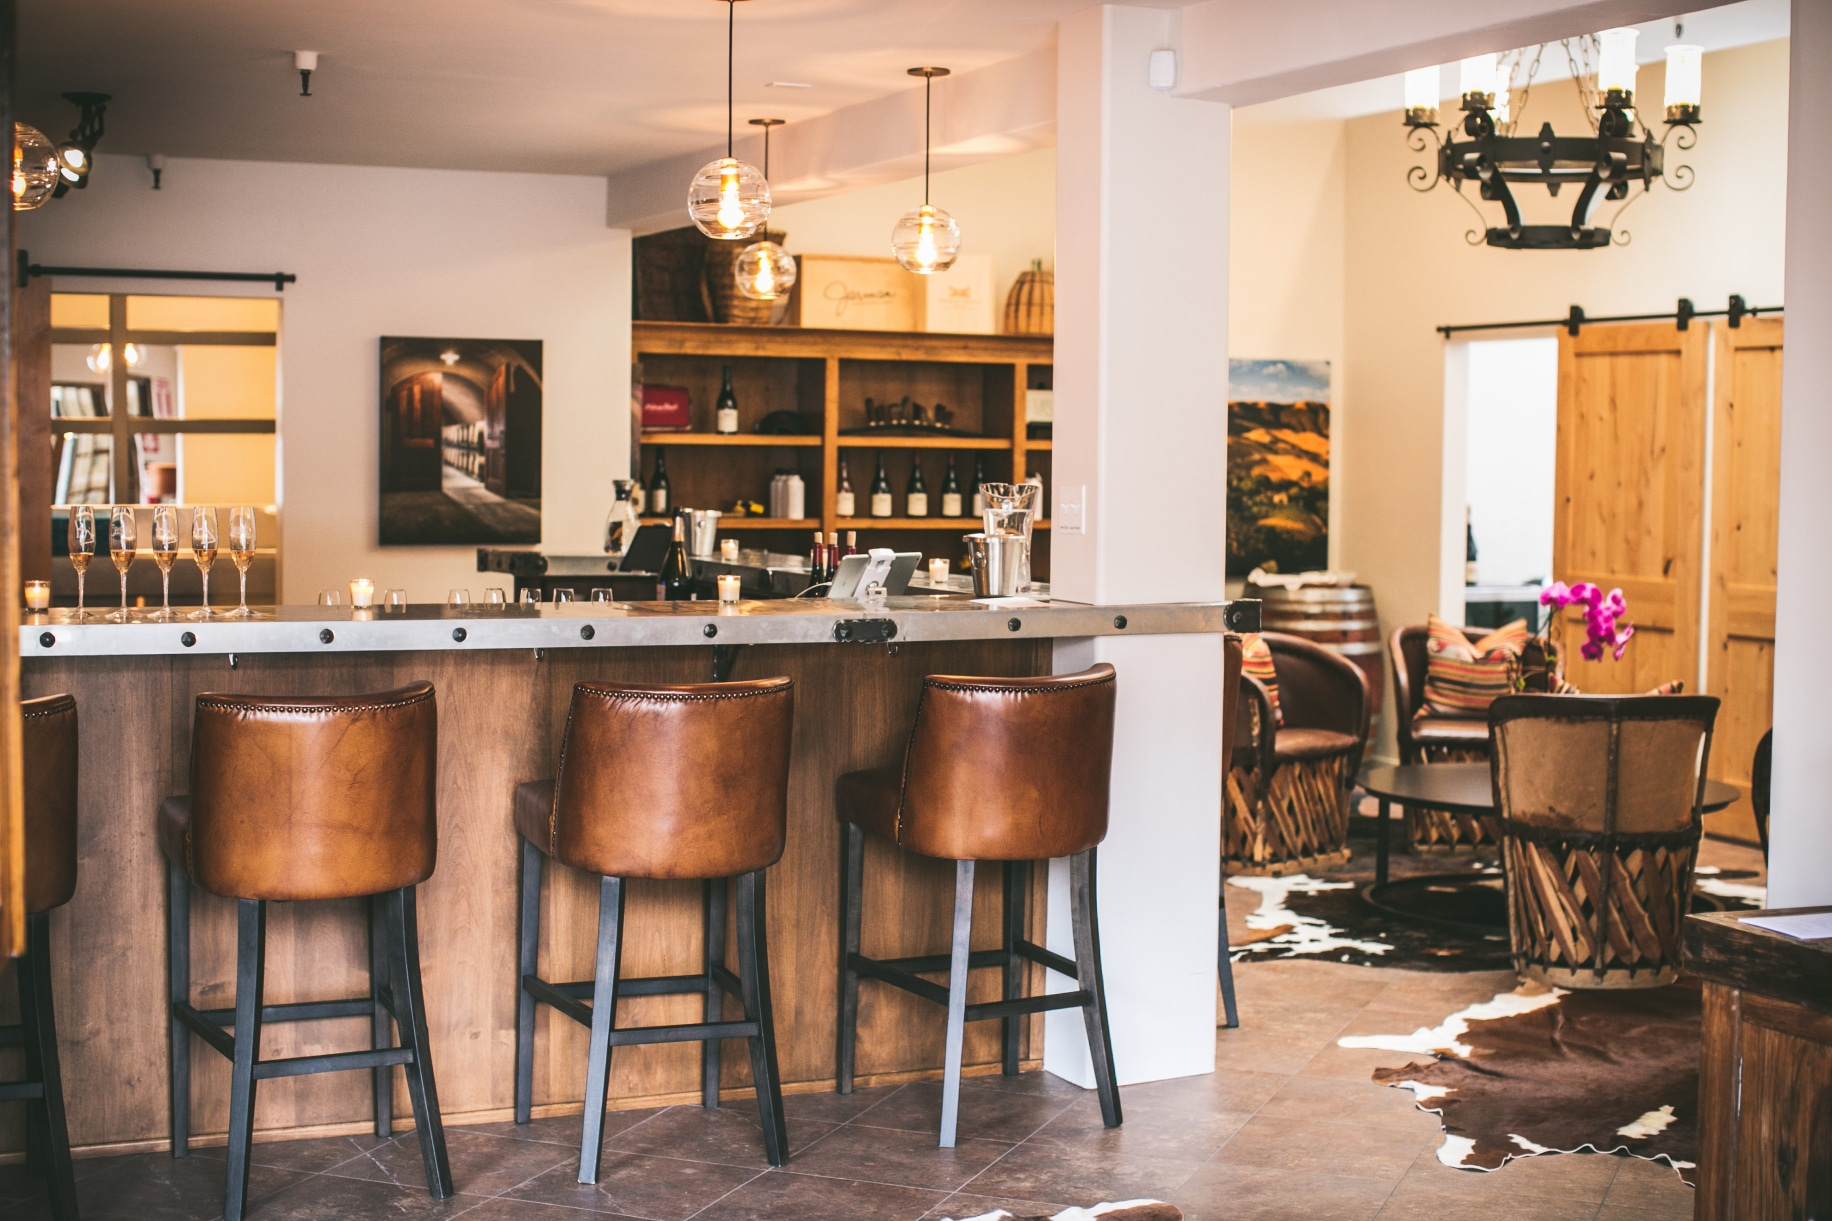 Merveilleux The Winery Is Owned And Operated By Birmingham Based Clients Of Humphries.  Photo Via Suzanne Humphries Design